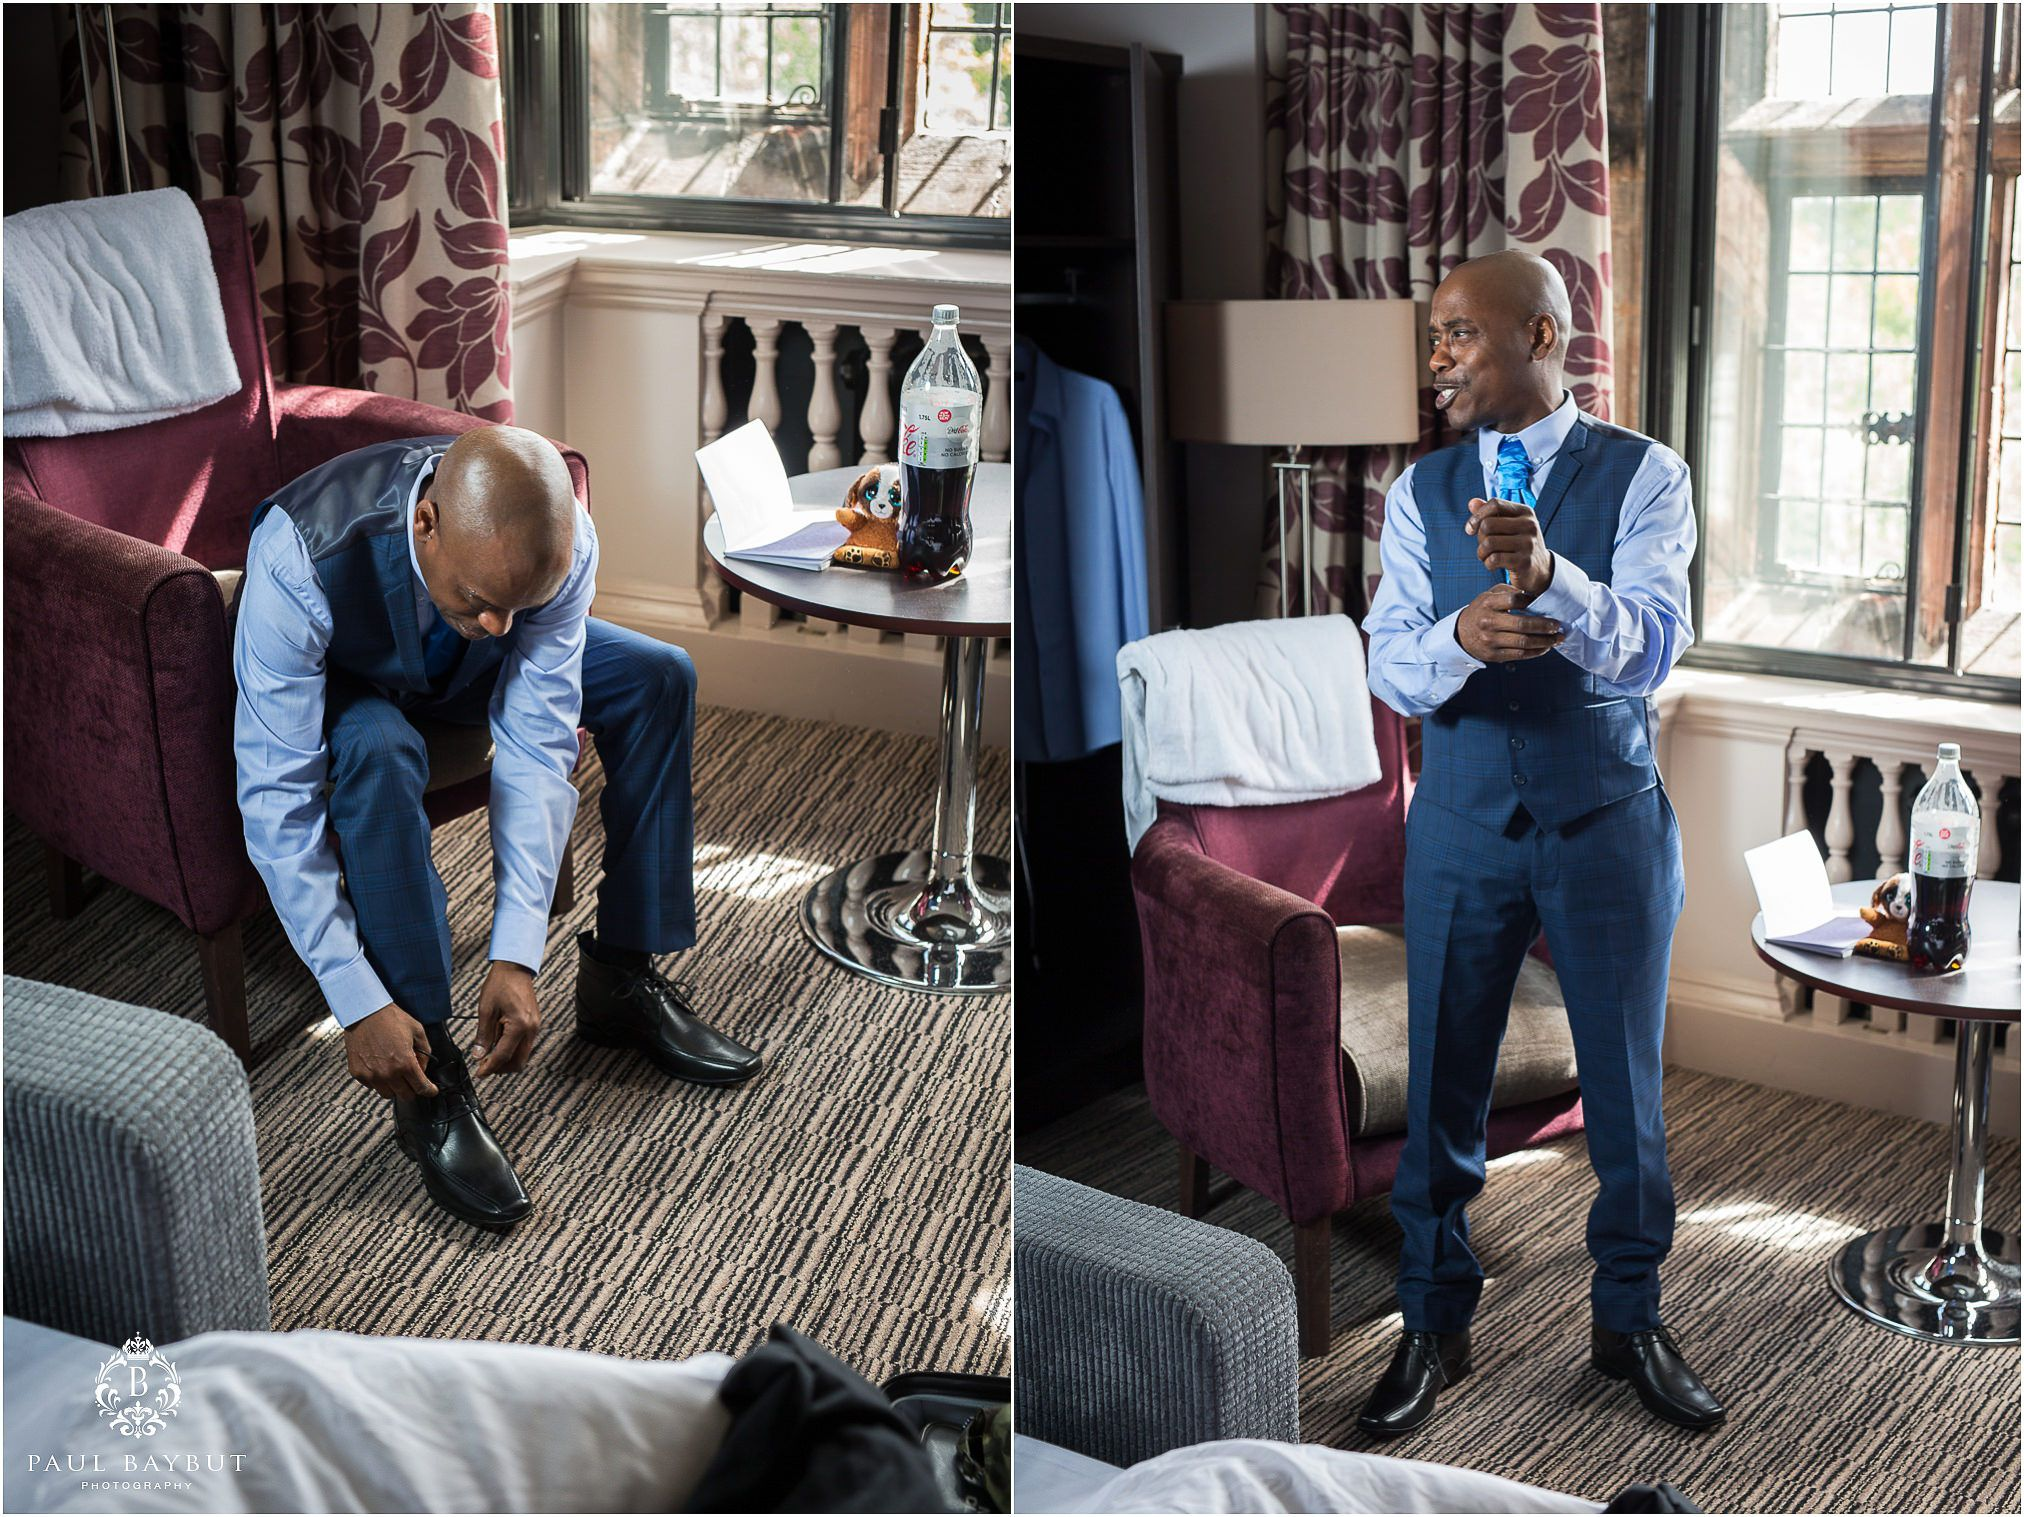 Groom ties his shoe laces and adjusts his shirt